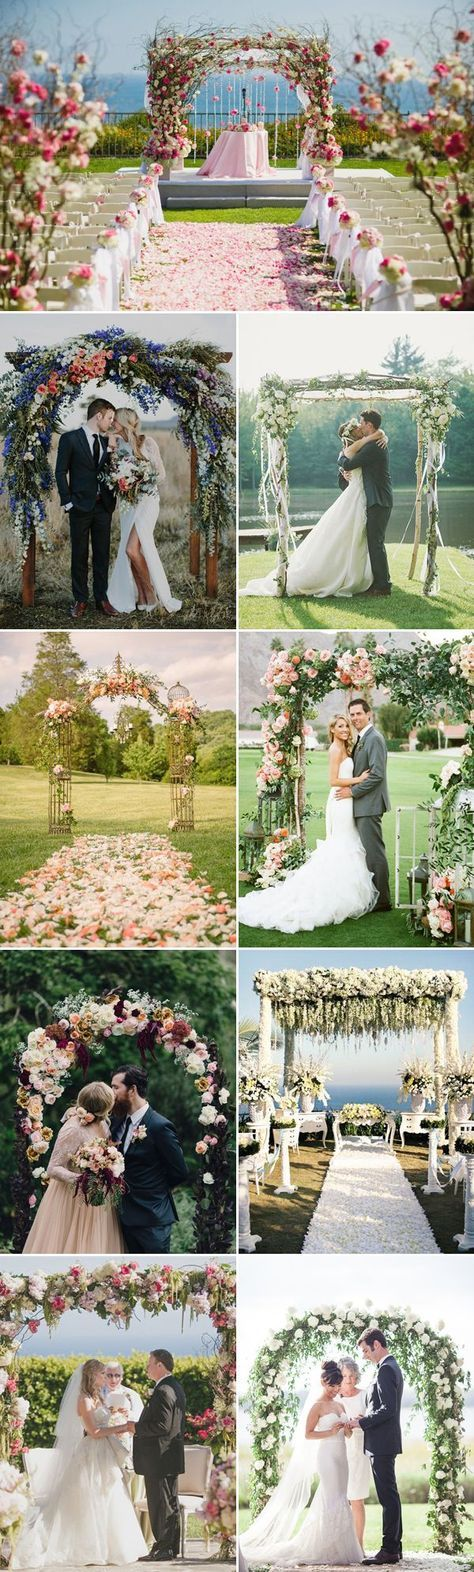 50 Beautiful Wedding Arch Decoration Ideas - Floral Inspired